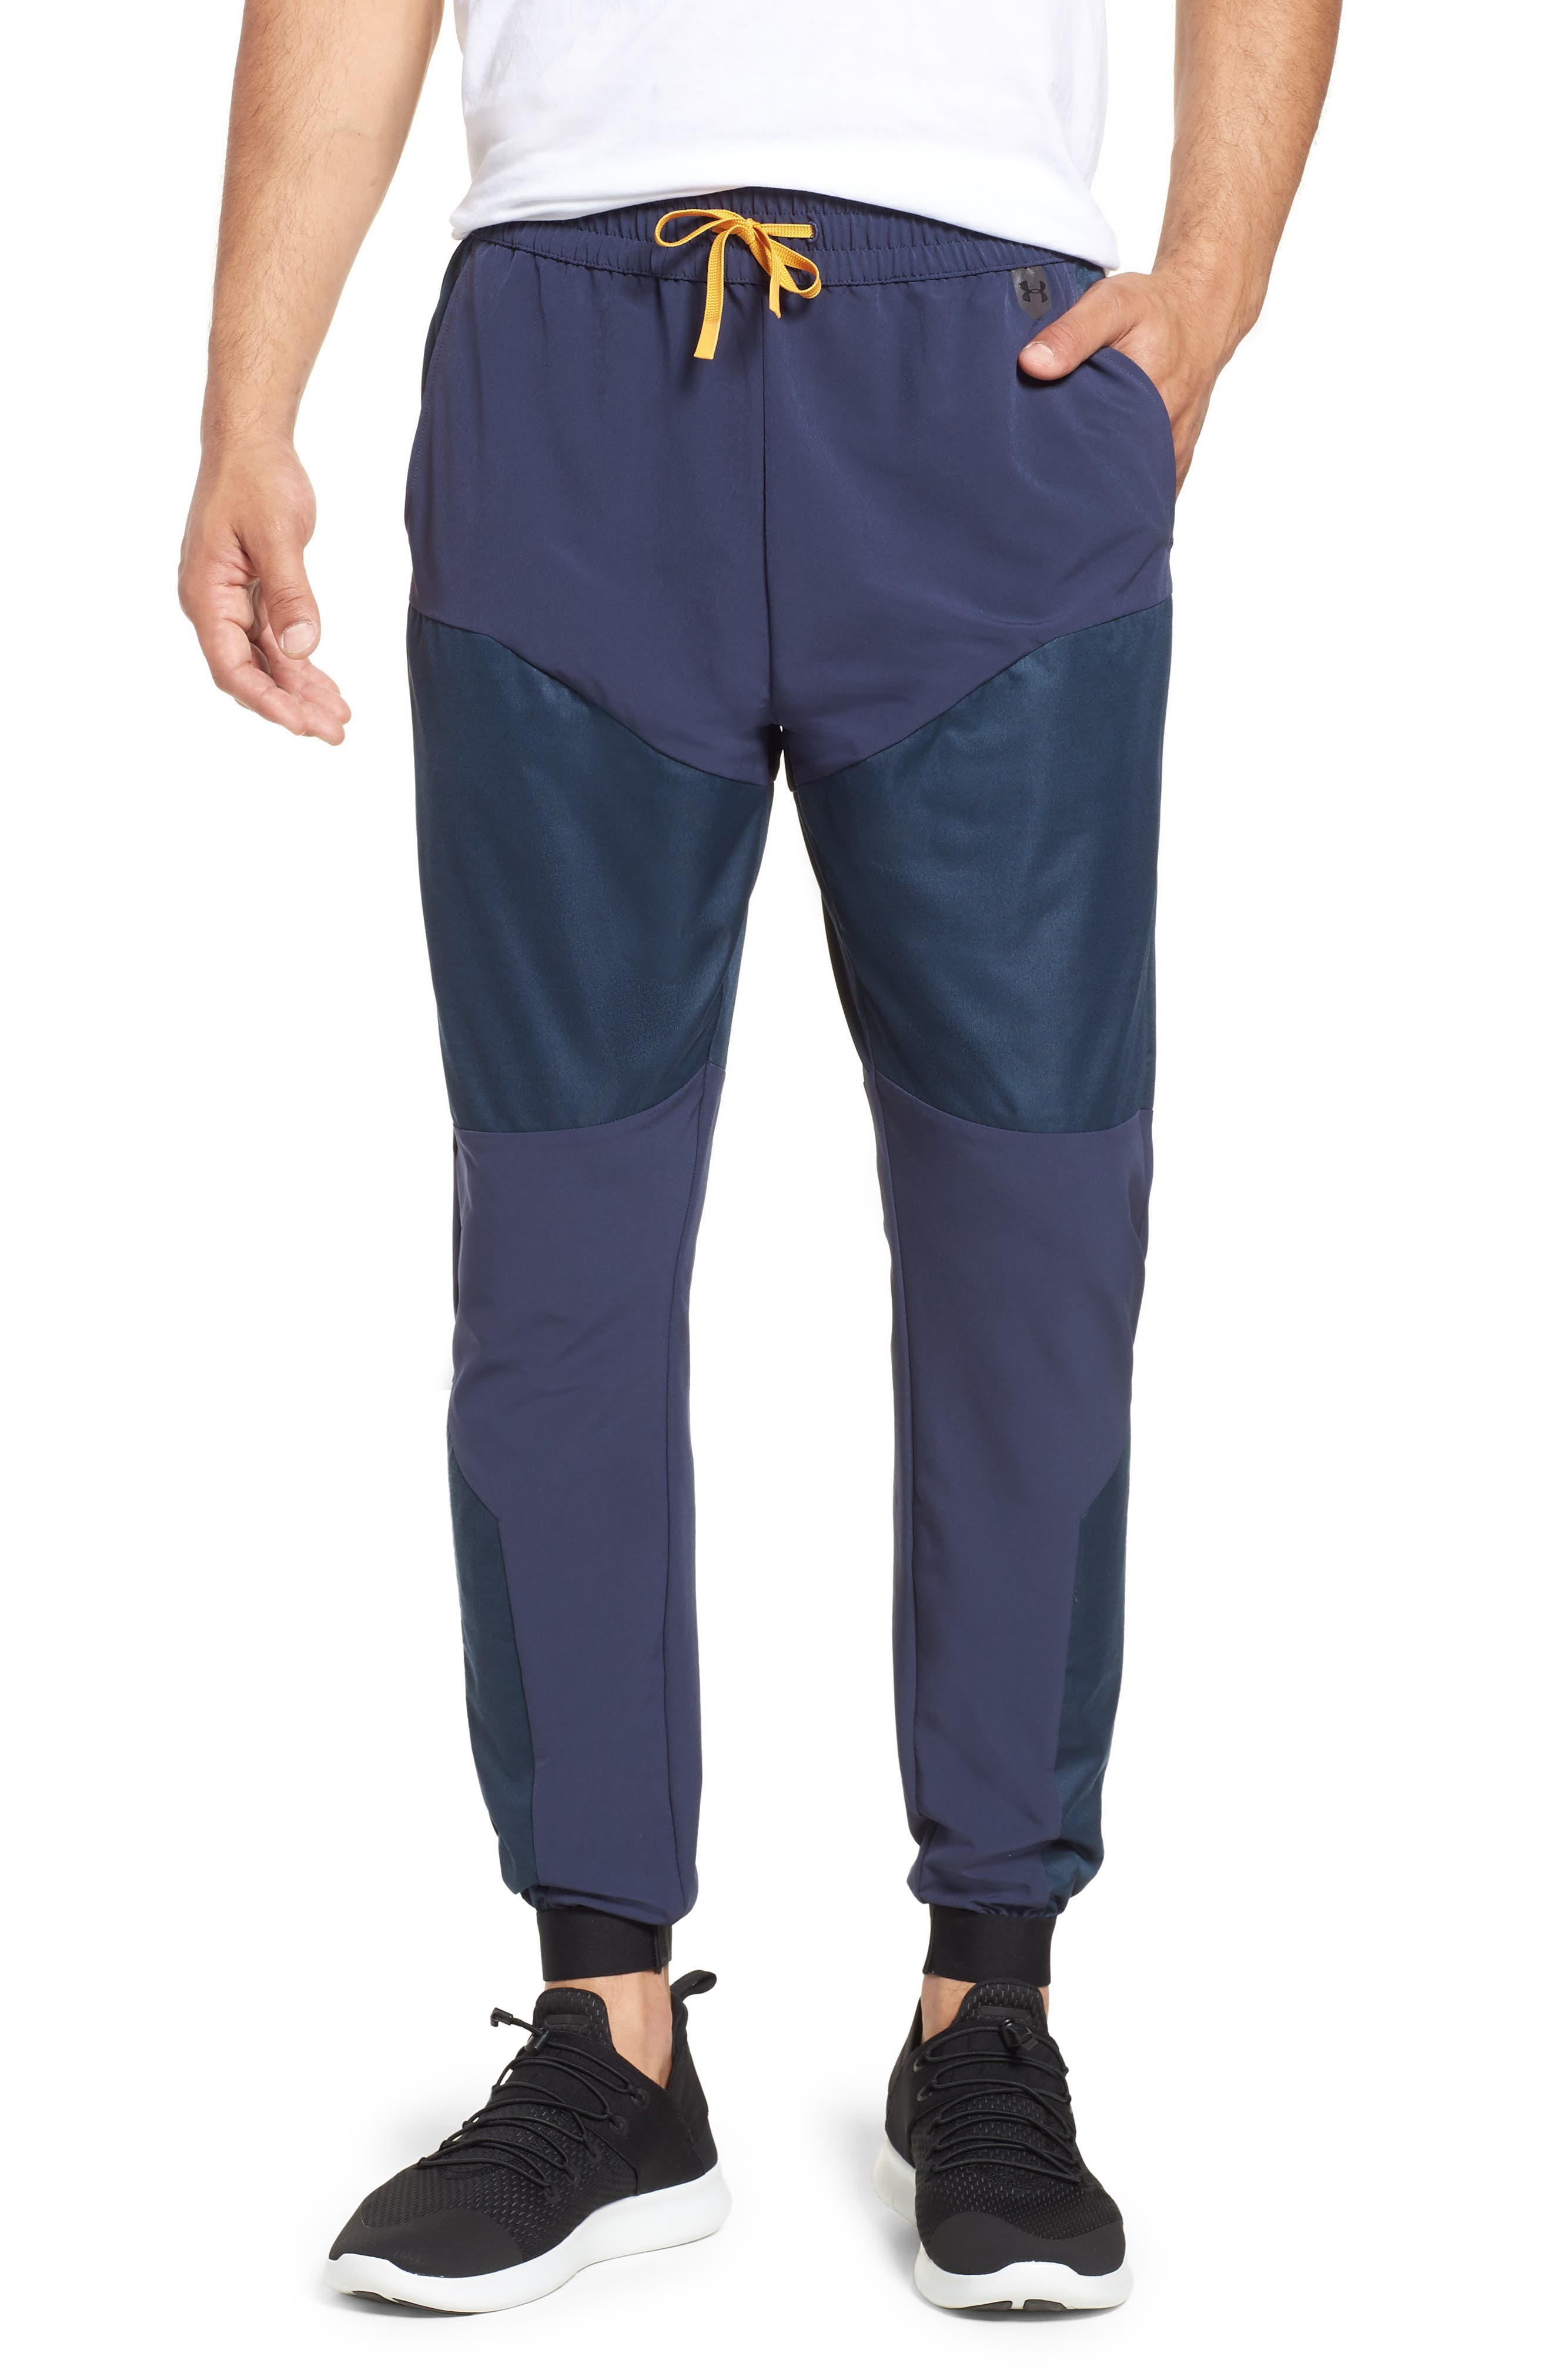 Unstoppable GORE<sup>®</sup> WINDSTOPPER<sup>®</sup> Jogger Pants,                         Main,                         color, MIDSUMMER NIGHT / REFLECTIVE